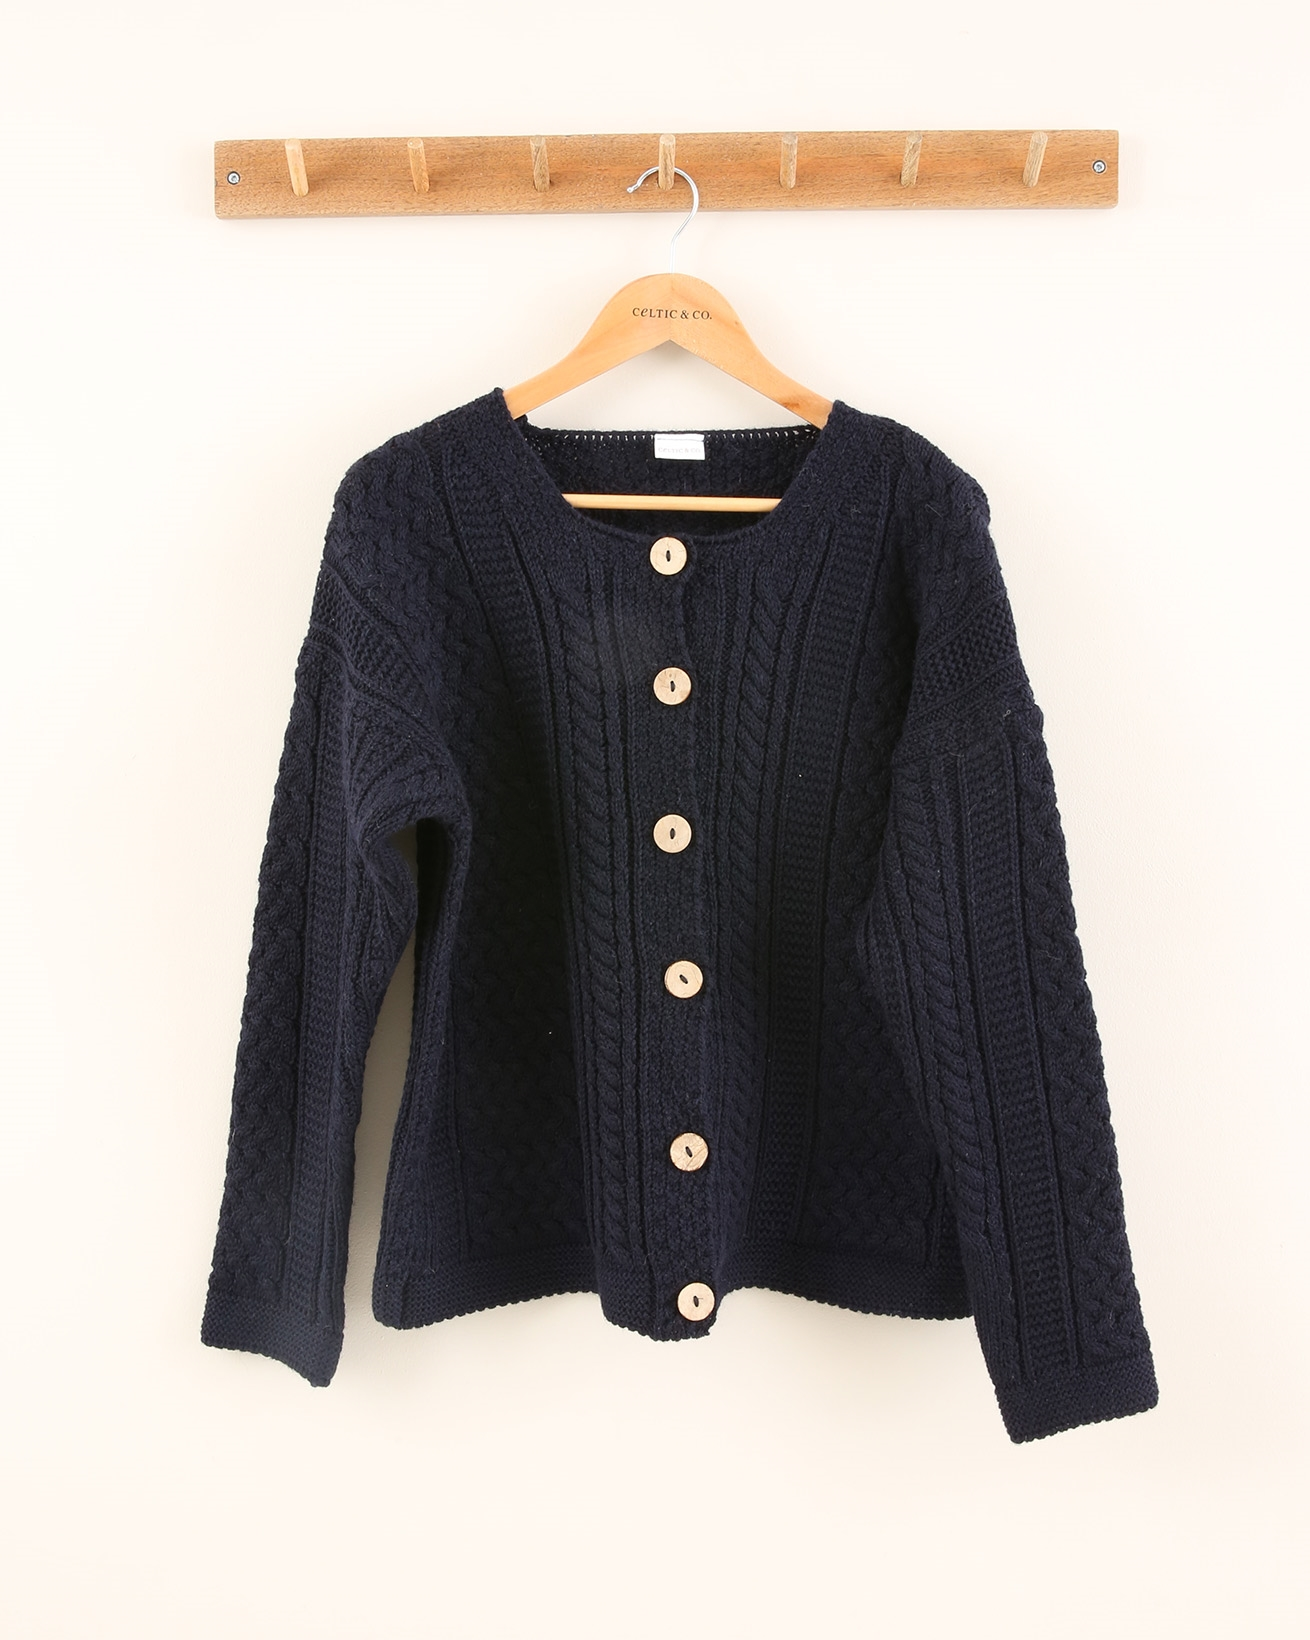 Cable Cardi - Size Small - Navy - 1950